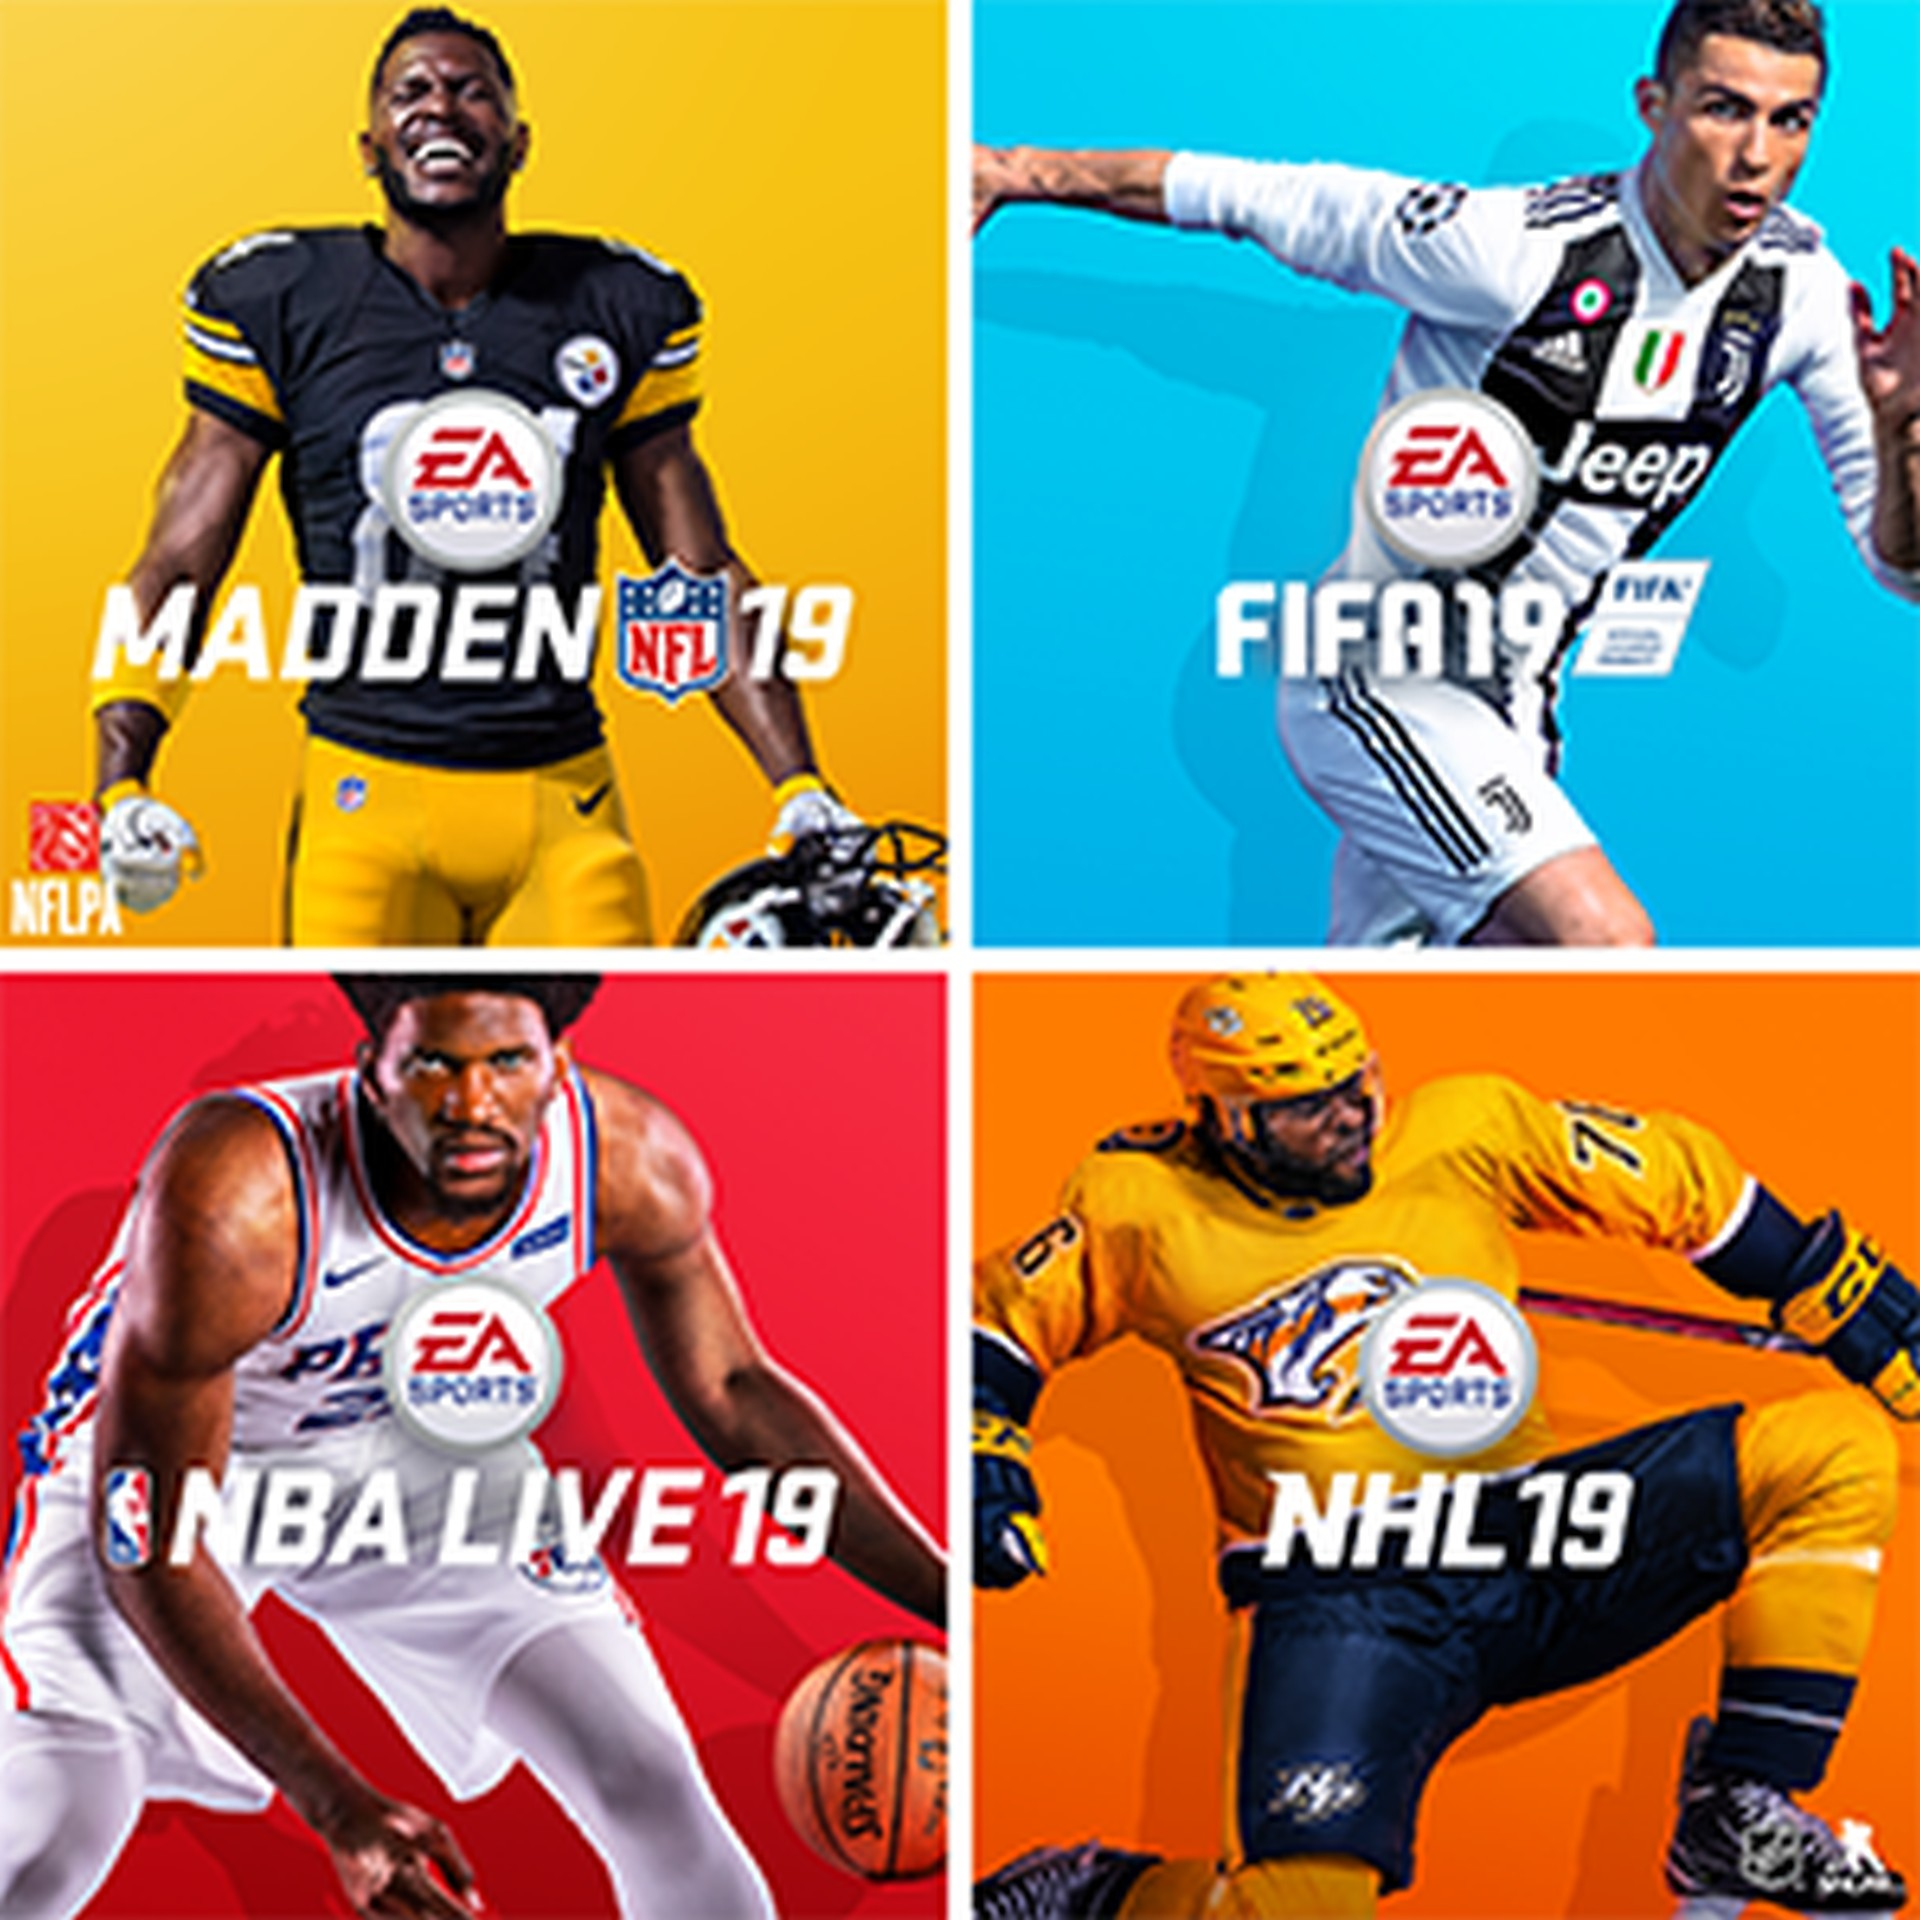 Get Four Great Games with the EA Sports Bundle